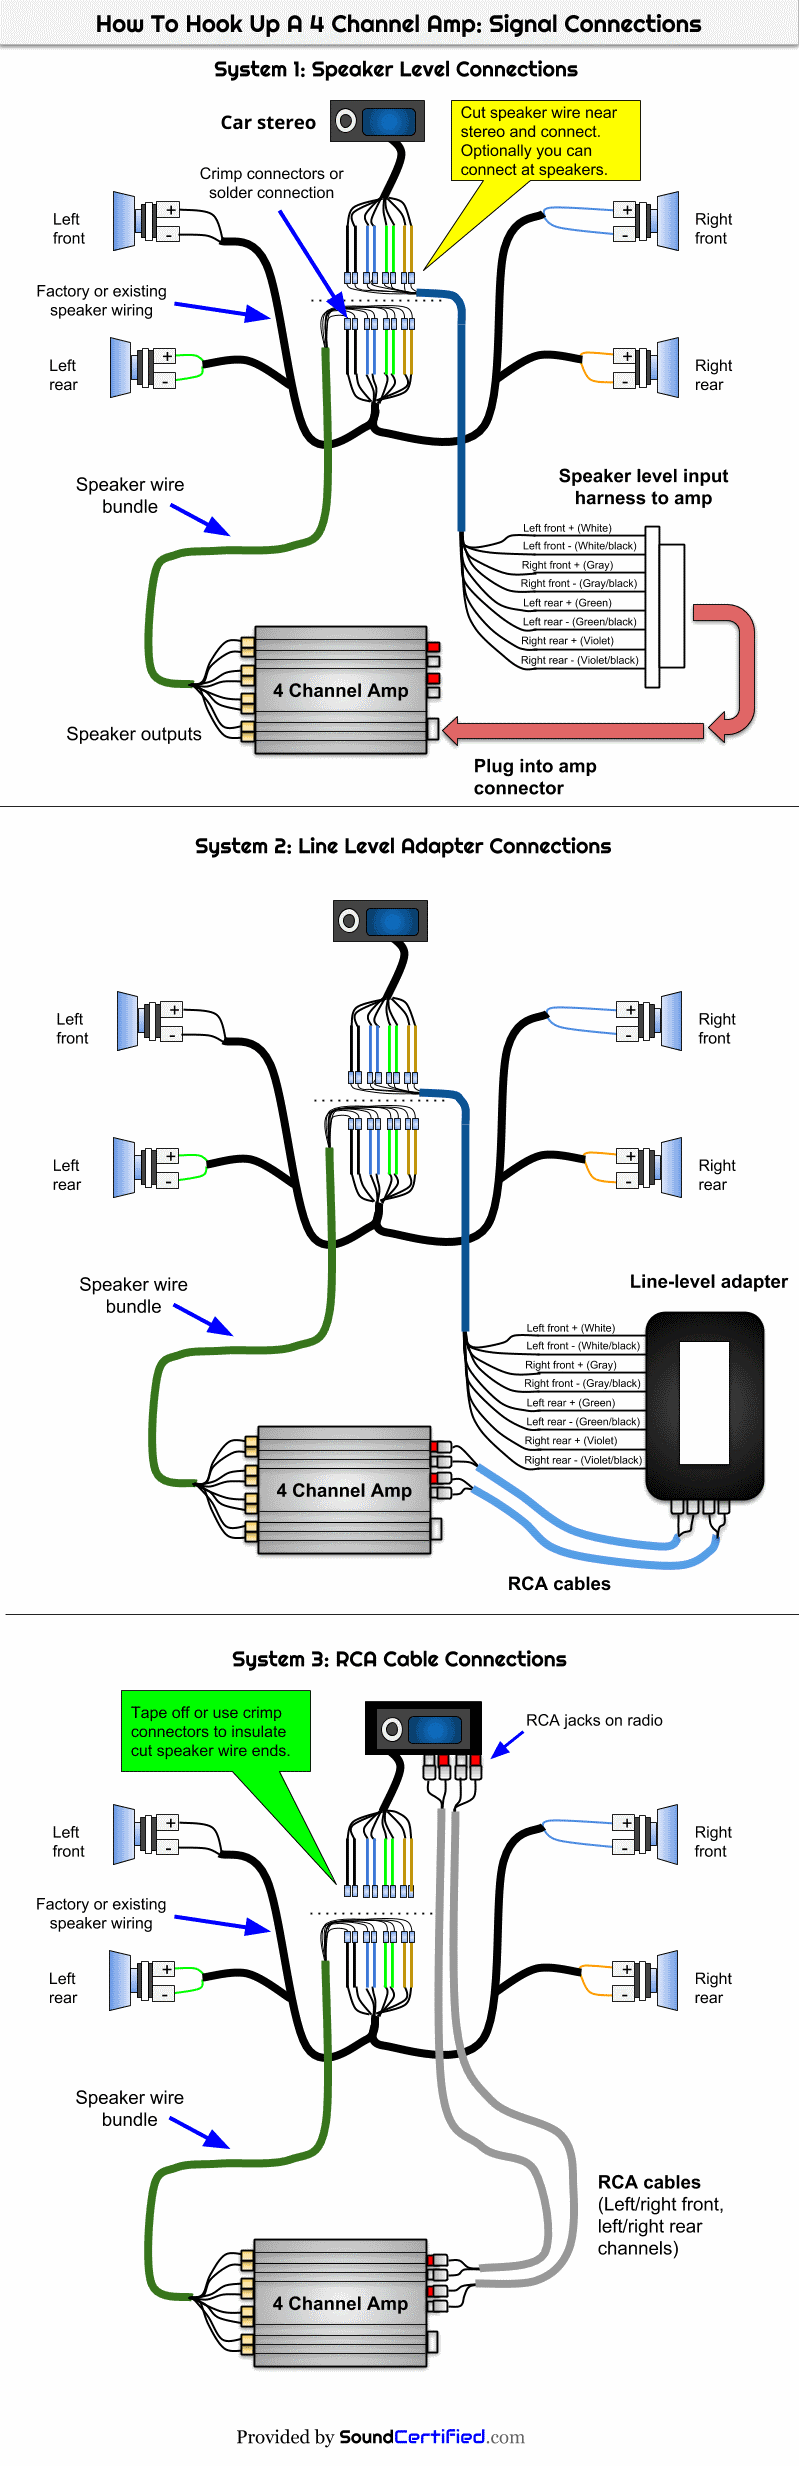 How To Hook Up A 4 Channel Amp Front And Rear Speakers Wiring Diagrams Which Are In The Installation Manual Often Signal Connection Diagram